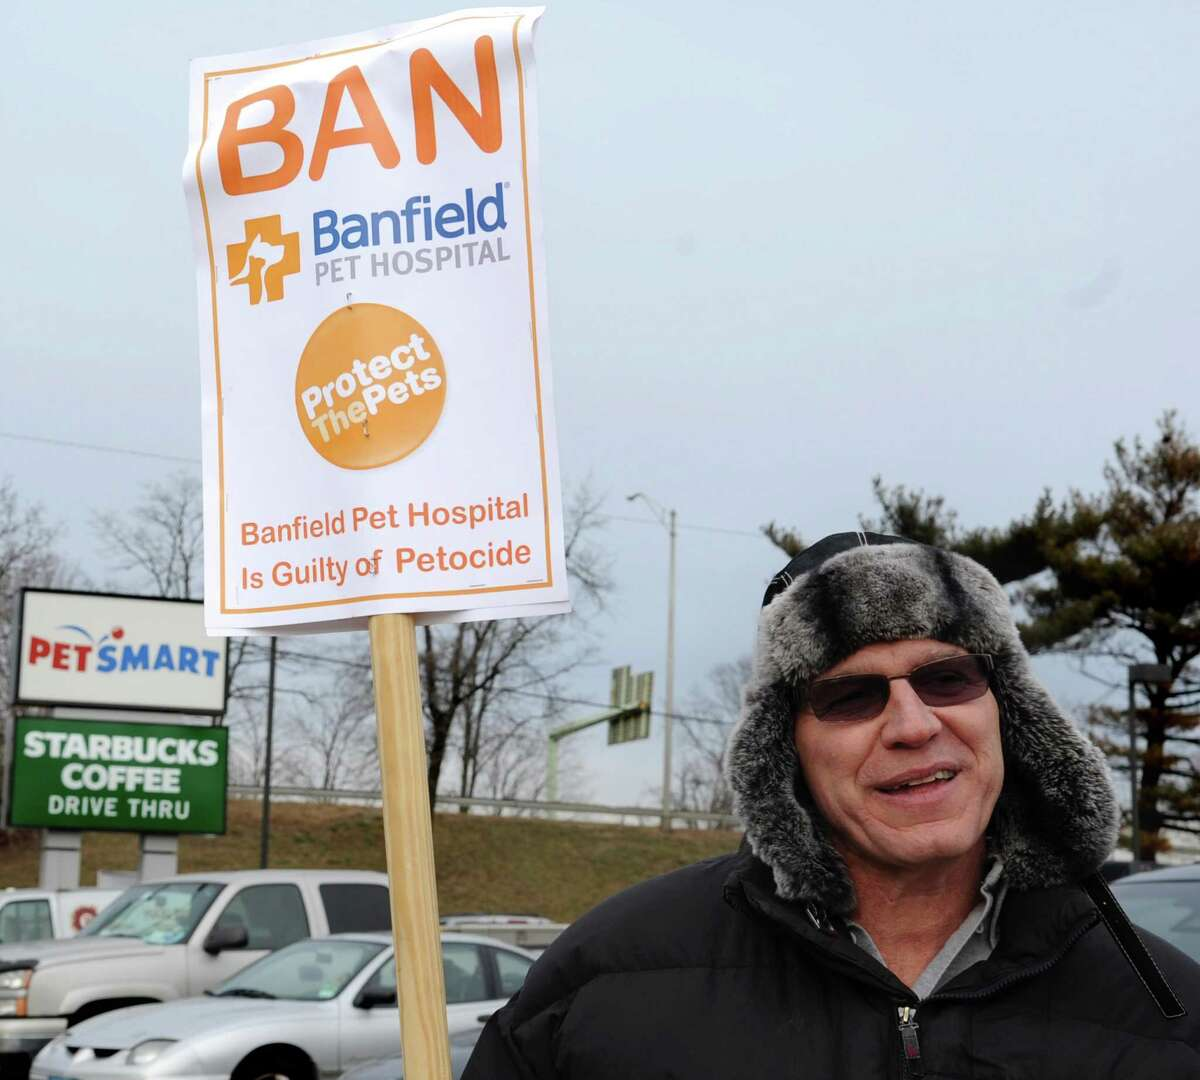 John Robb holds a picket sign outside PetSmart in Stamford on Friday, January 25, 2013. Robb was terminated from the Banfield Veterinary Clinic inside PetSmart because the company claimed he wasn't properly vaccinating pets. Robb, however, said he is protecting small pets that shouldn't receive the full doses to avoid over-vaccination.